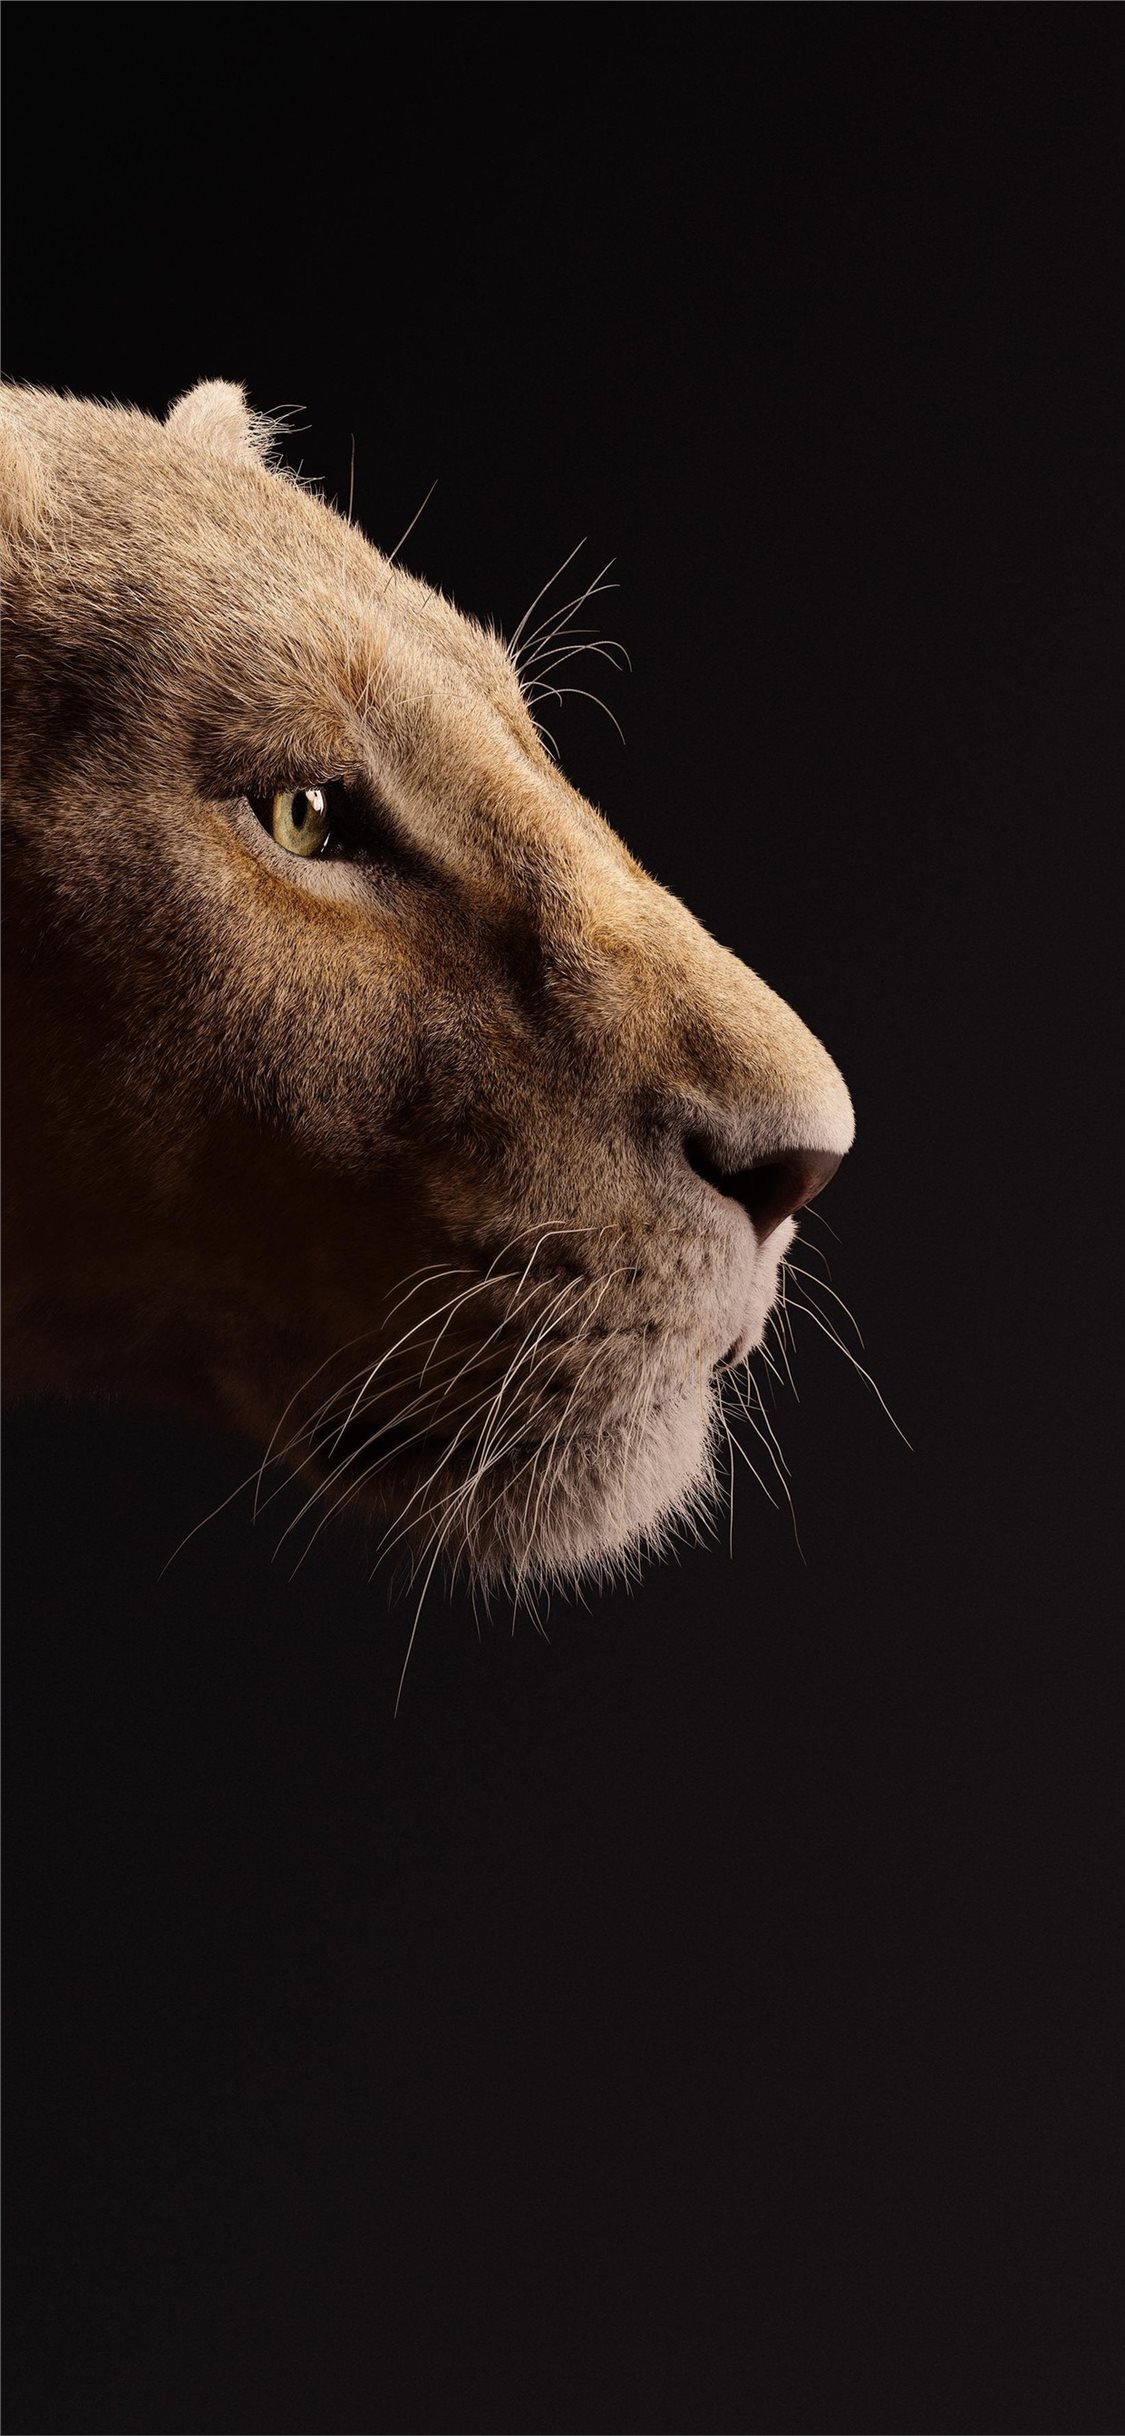 Beyonce As Nala The Lion King 2019 5k Iphone X Wallpapers